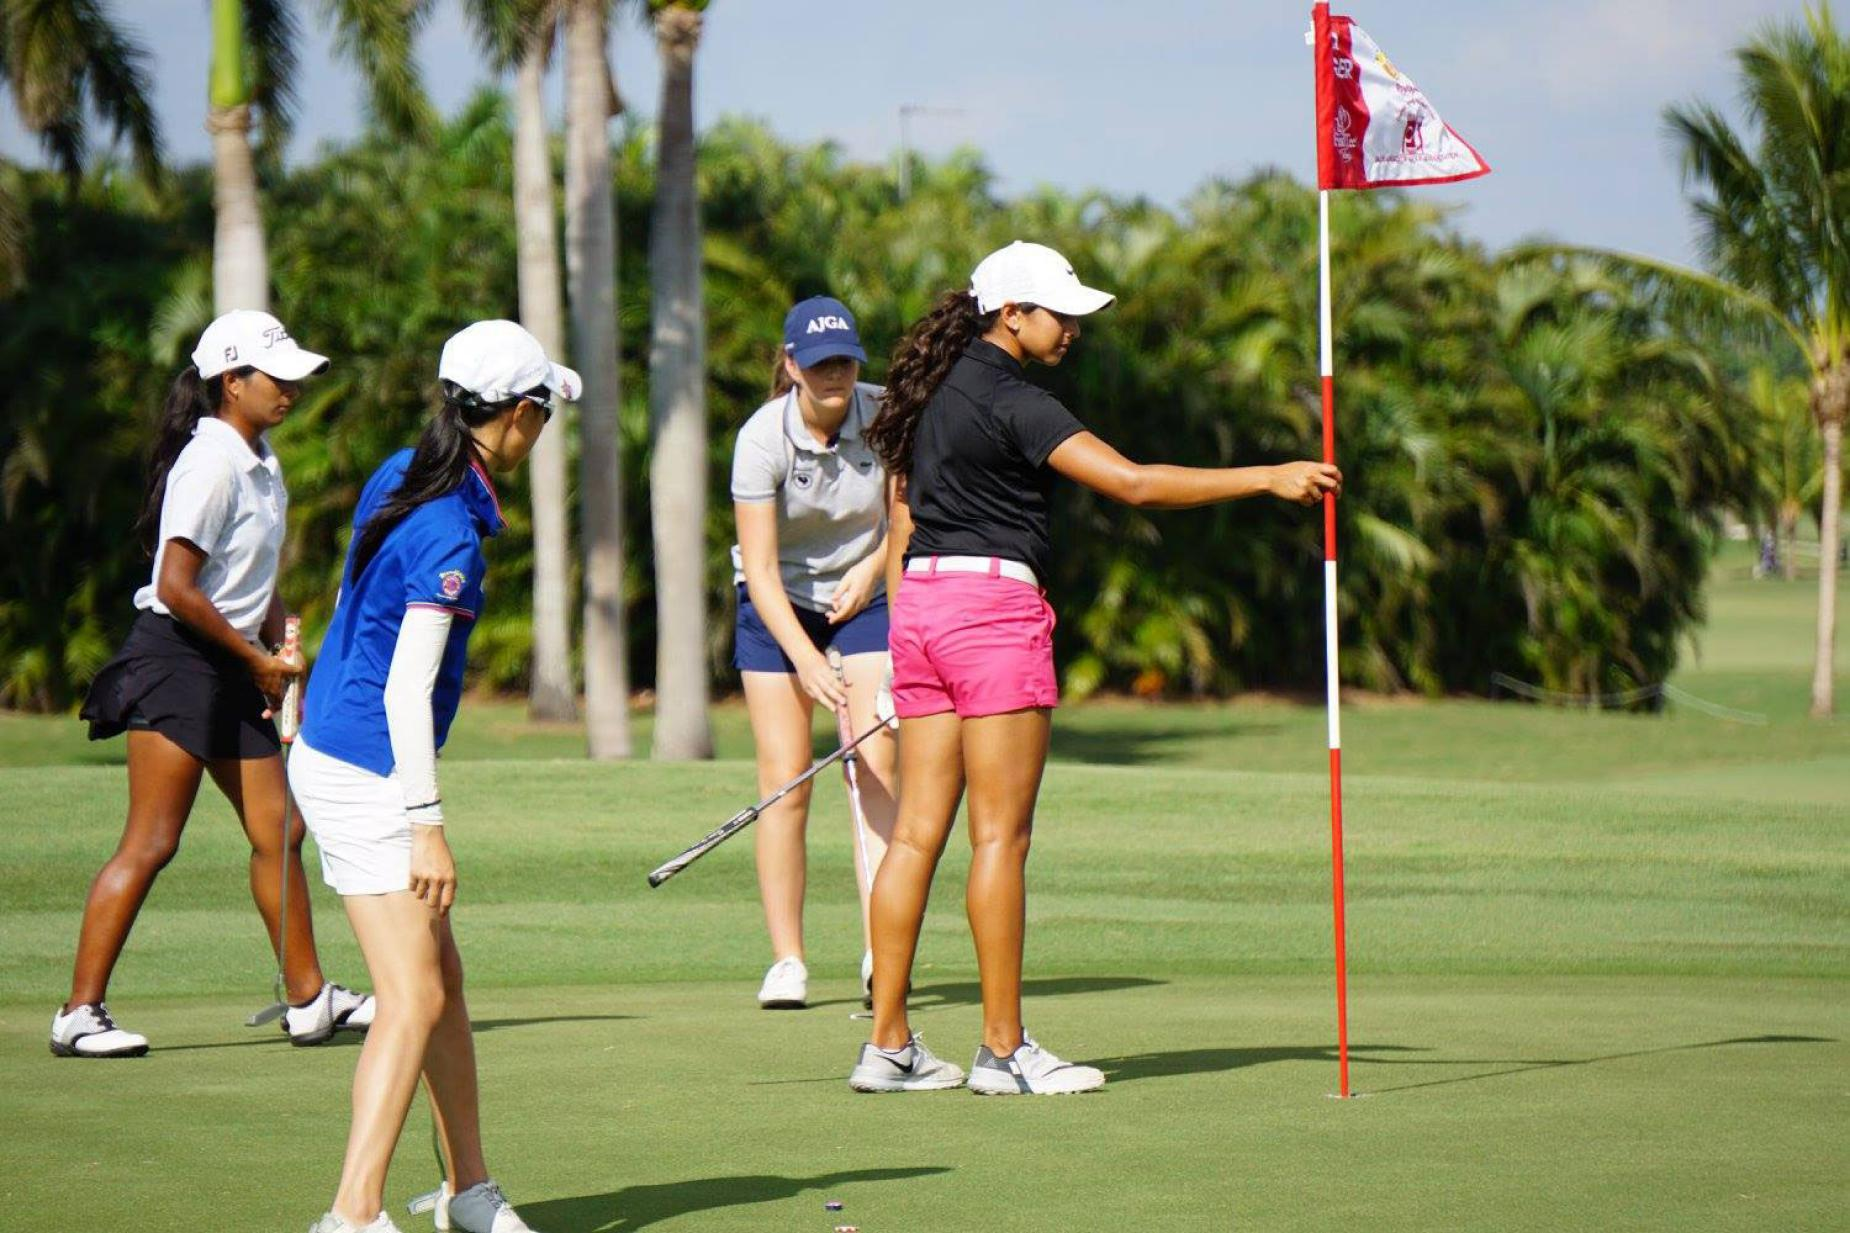 miami-international-links-melreese-juniors.jpg